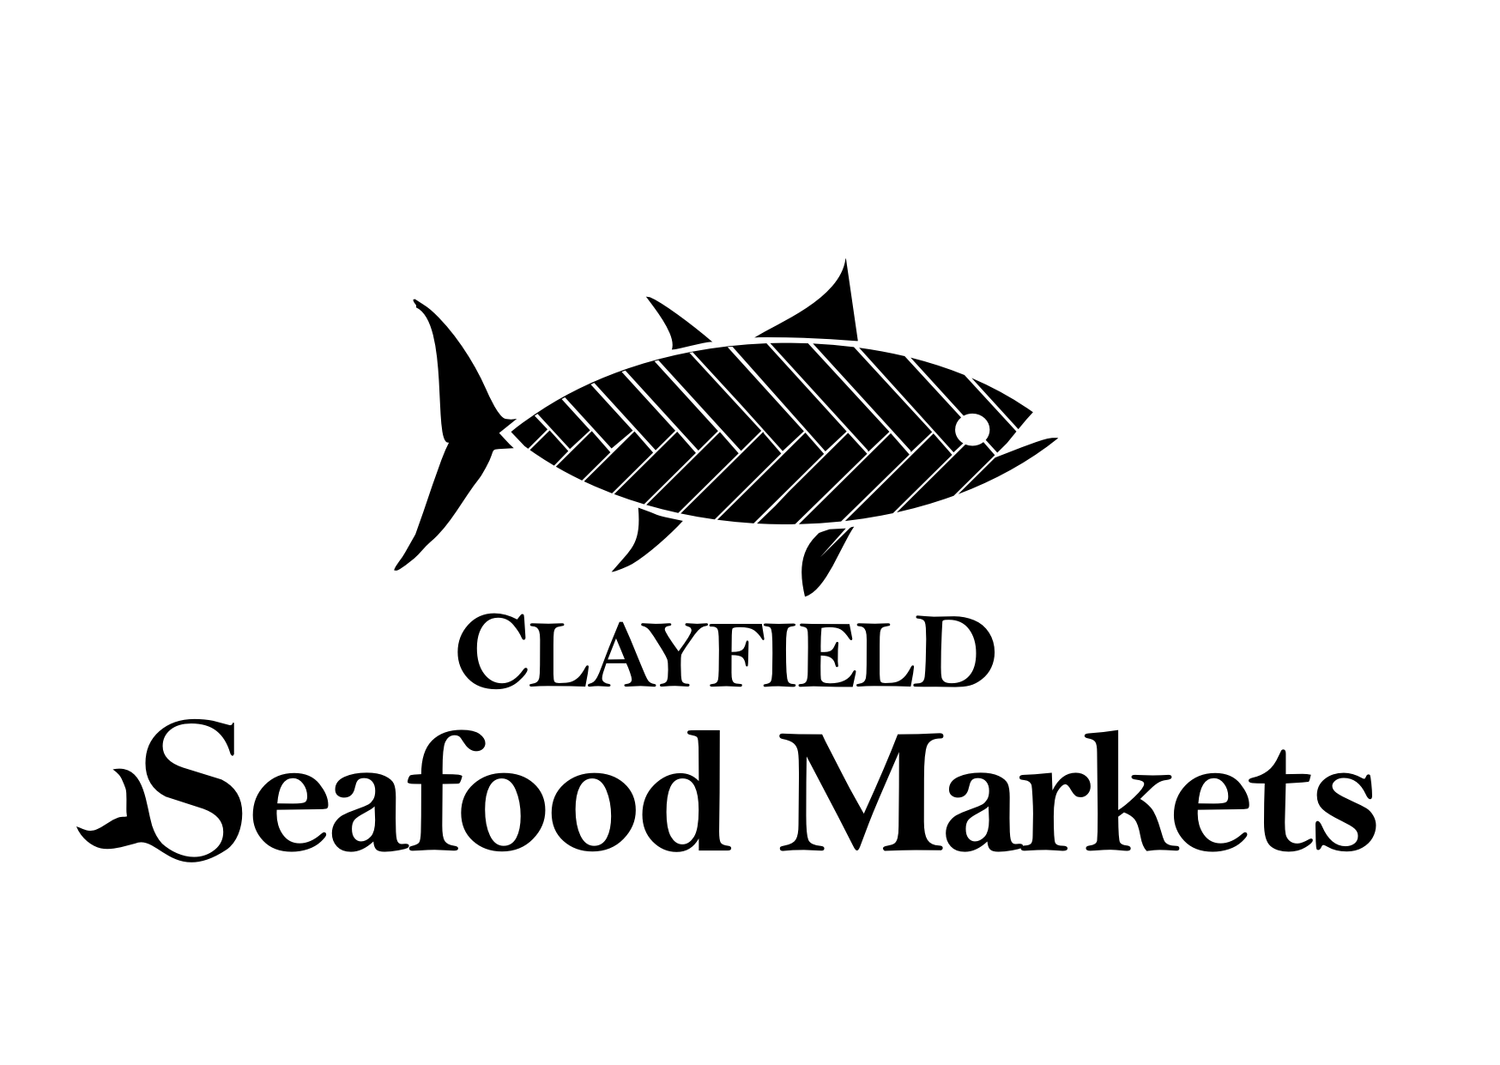 Clayfield Seafood Markets